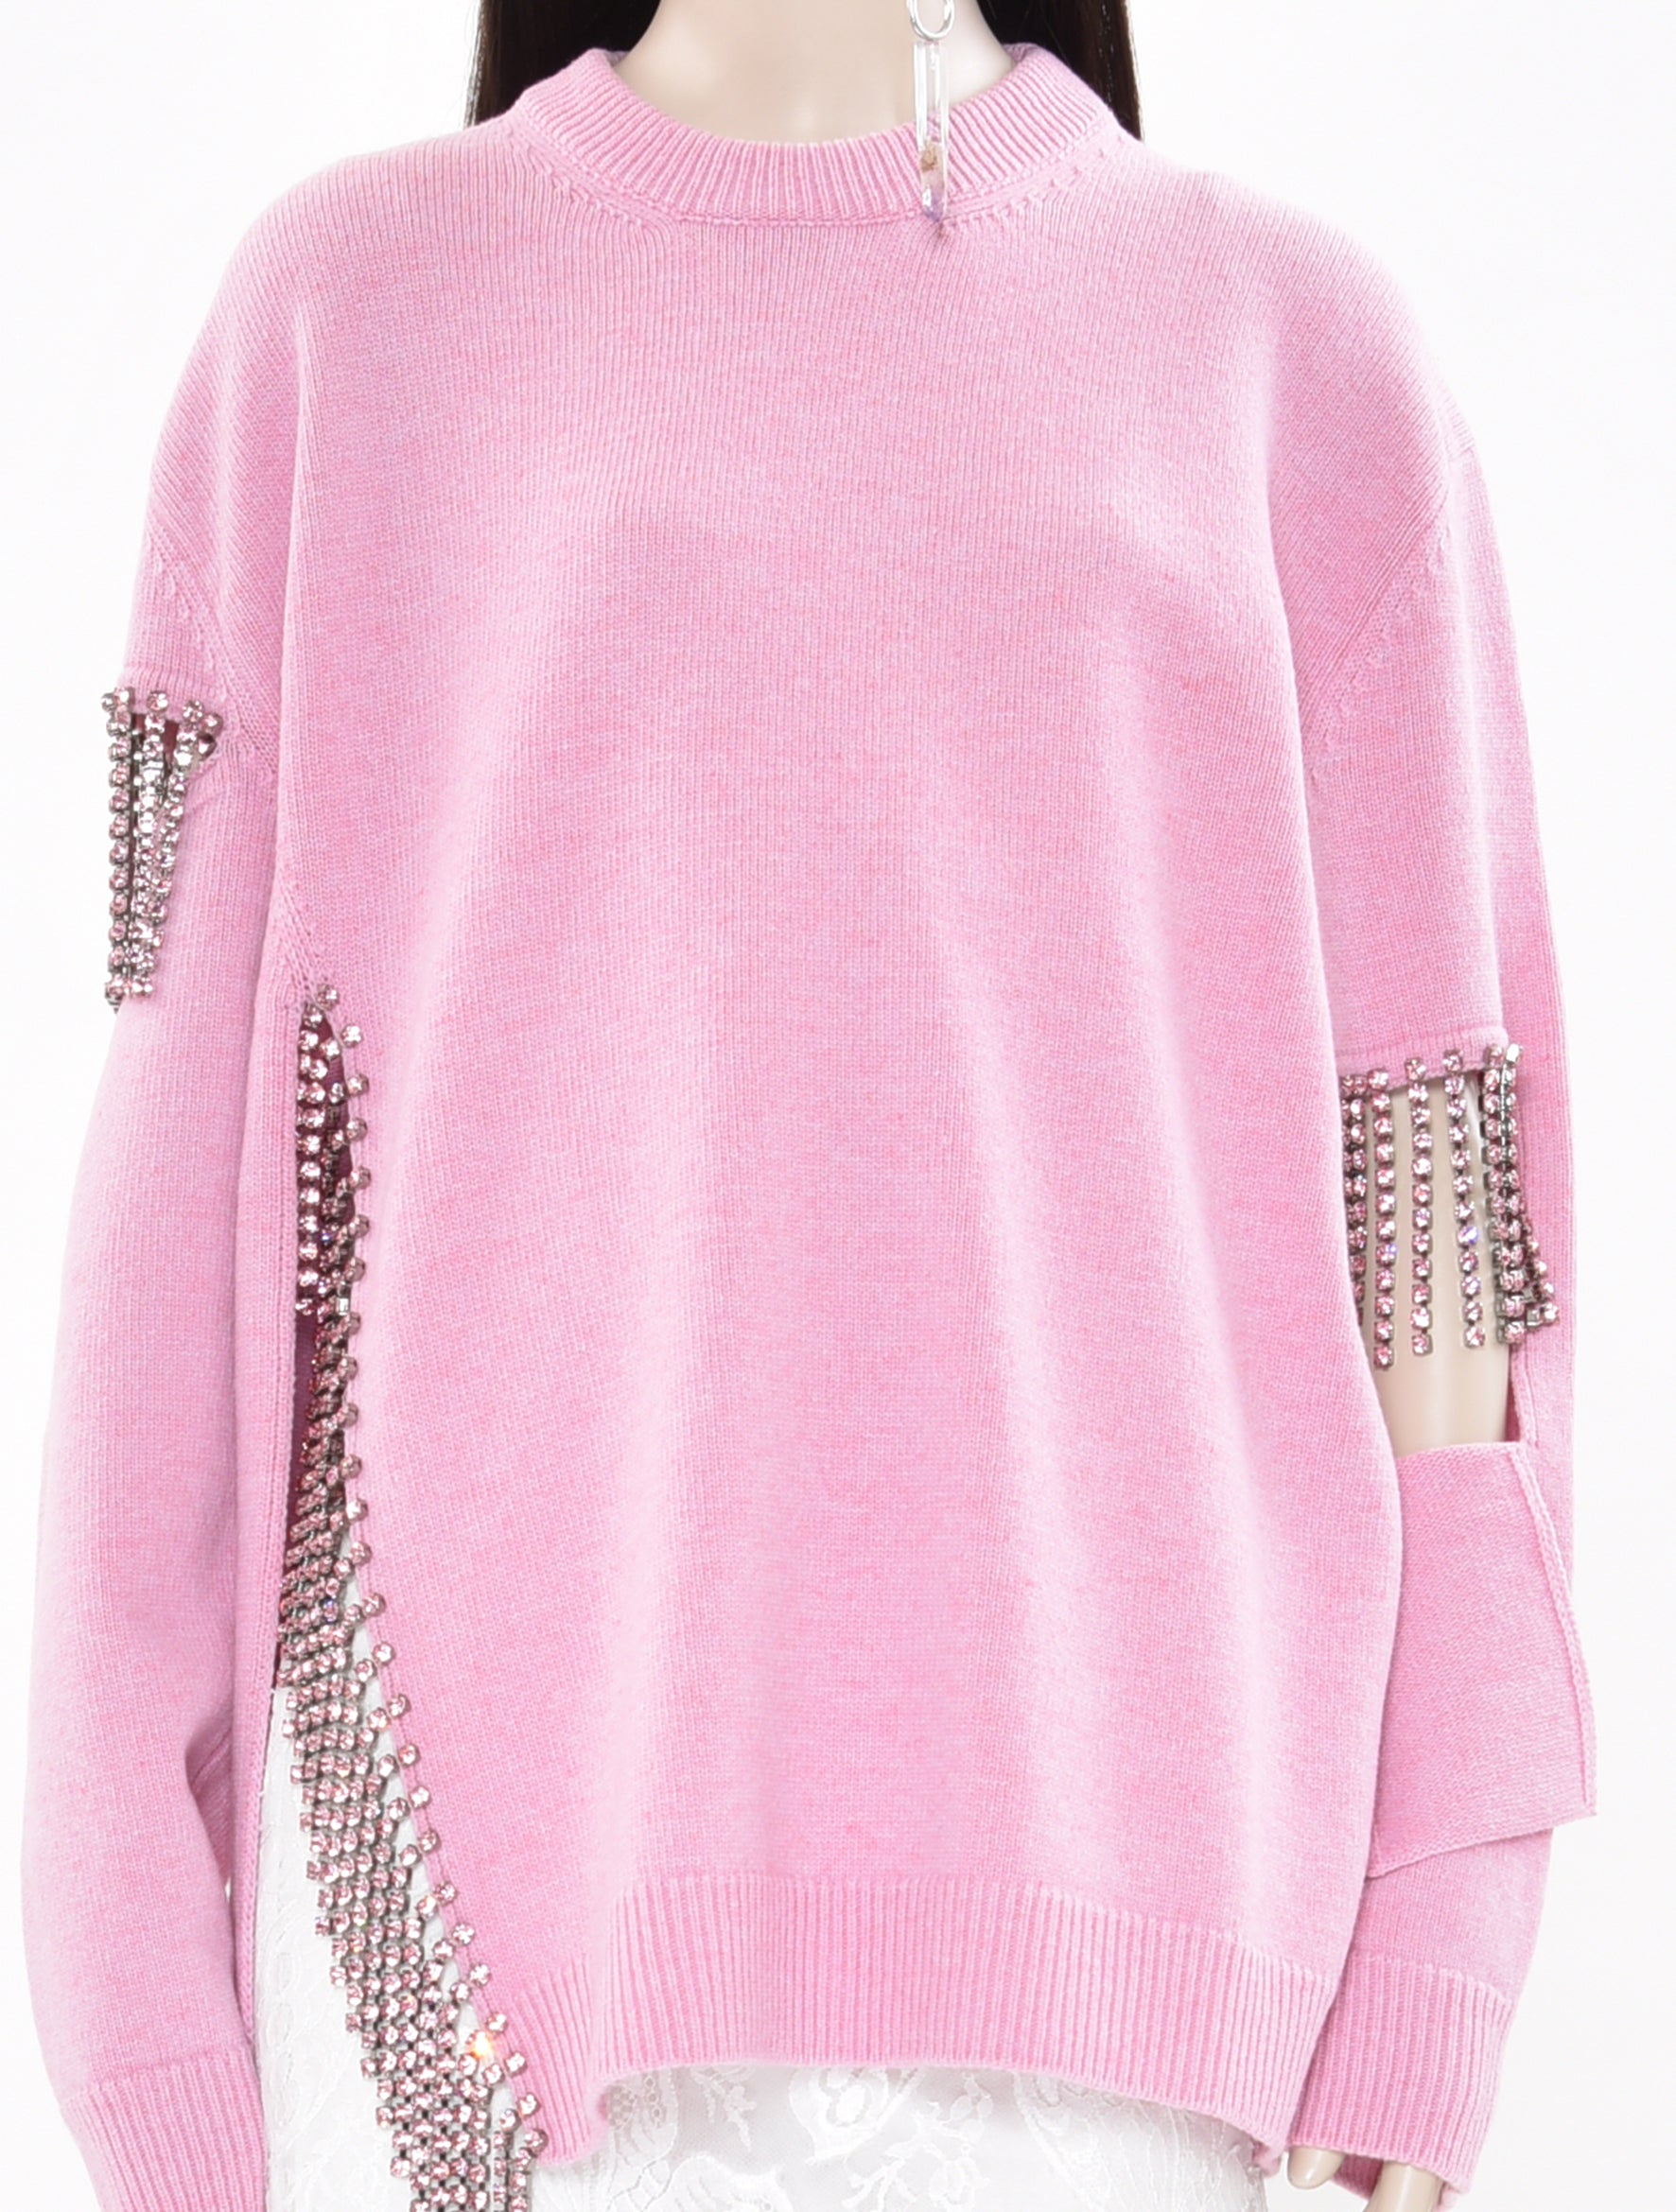 Cutout Cup Chain knit Sweater